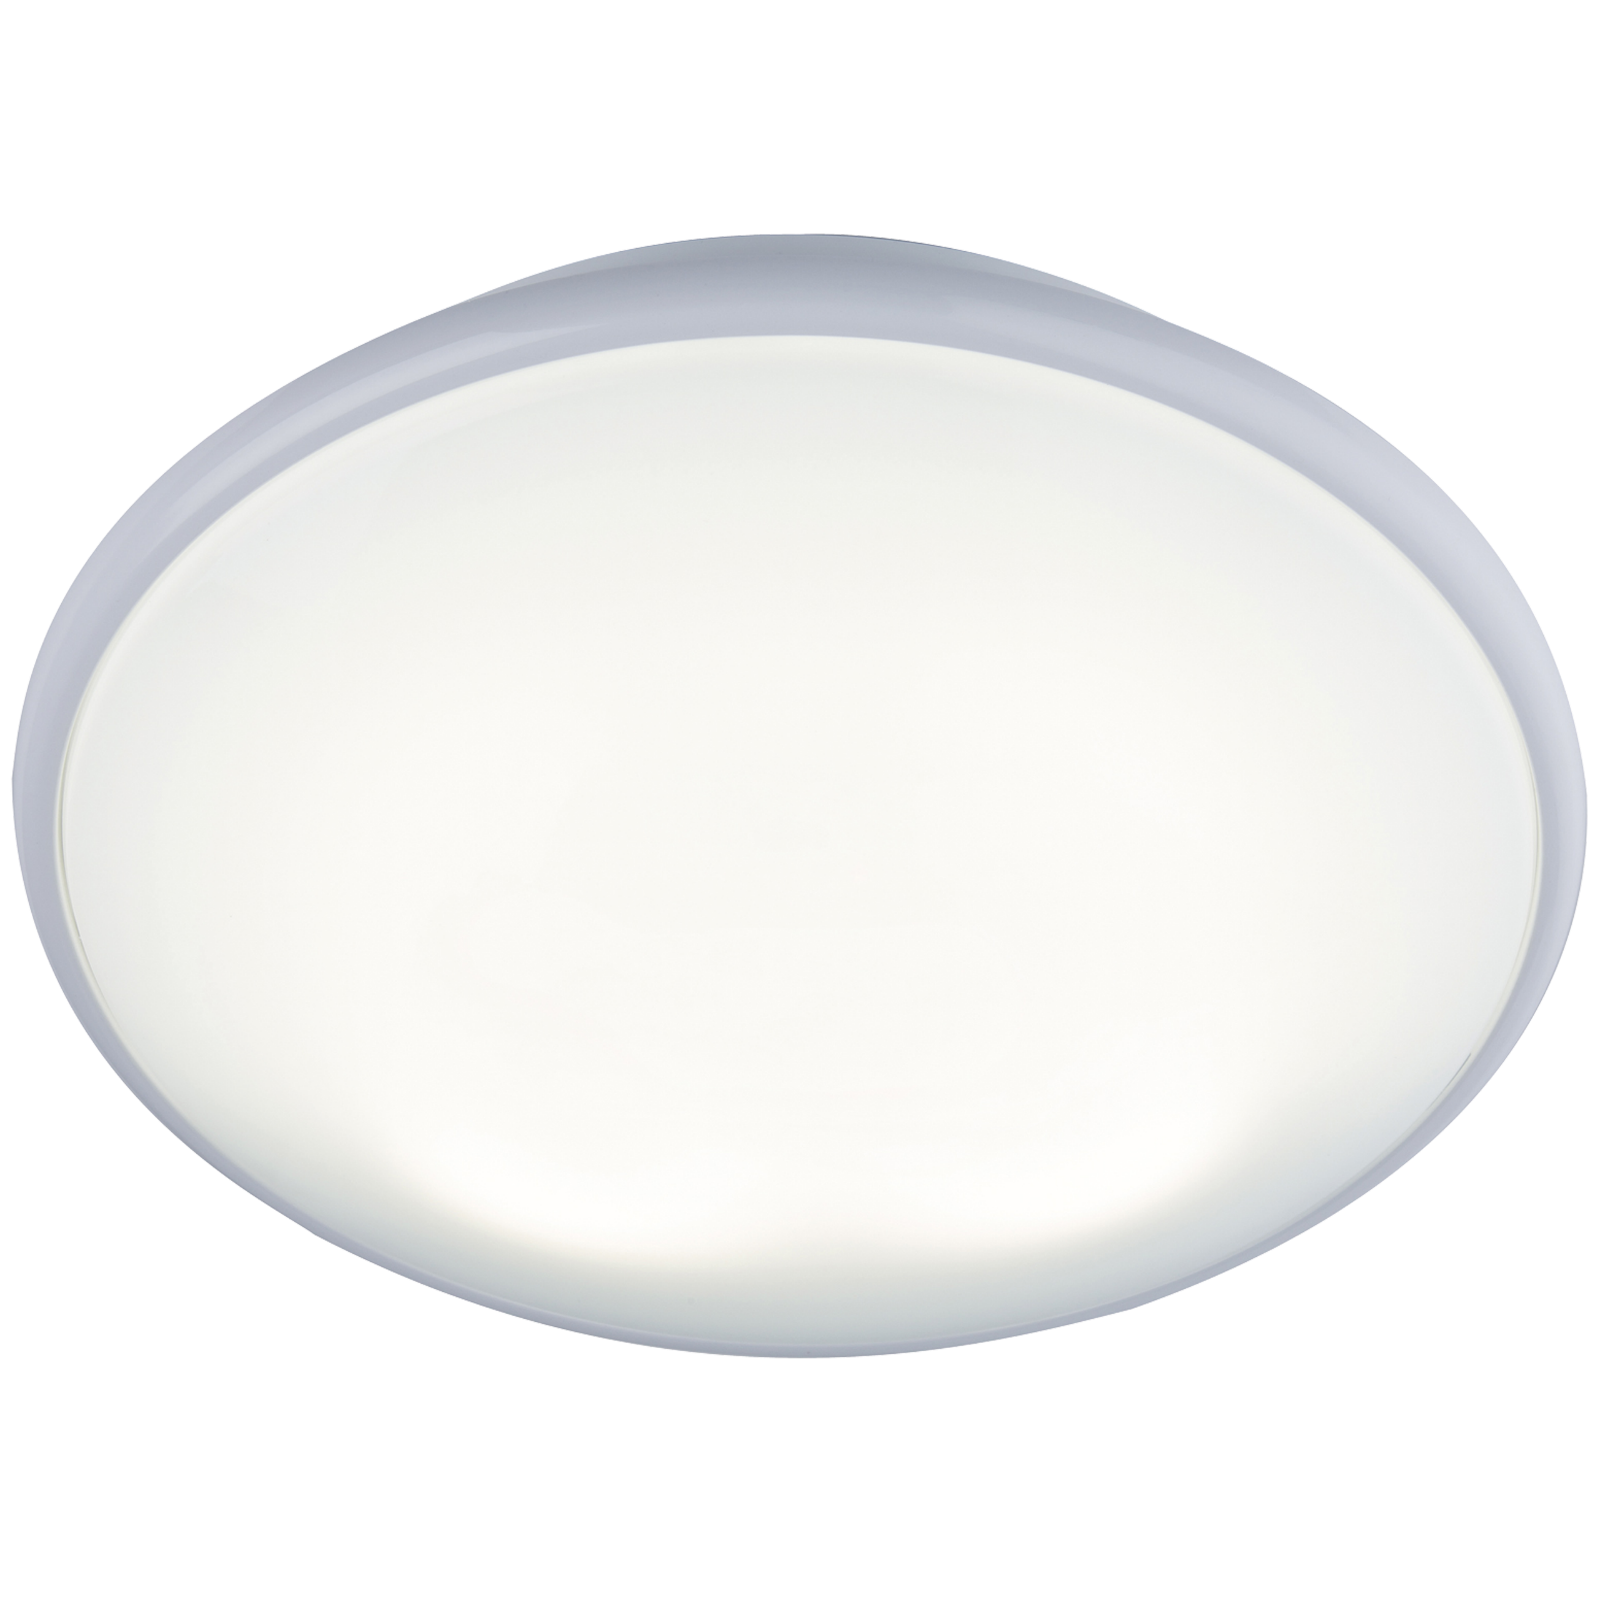 IP20 38W 2D HF Bulkhead with Opal Diffuser and White Base